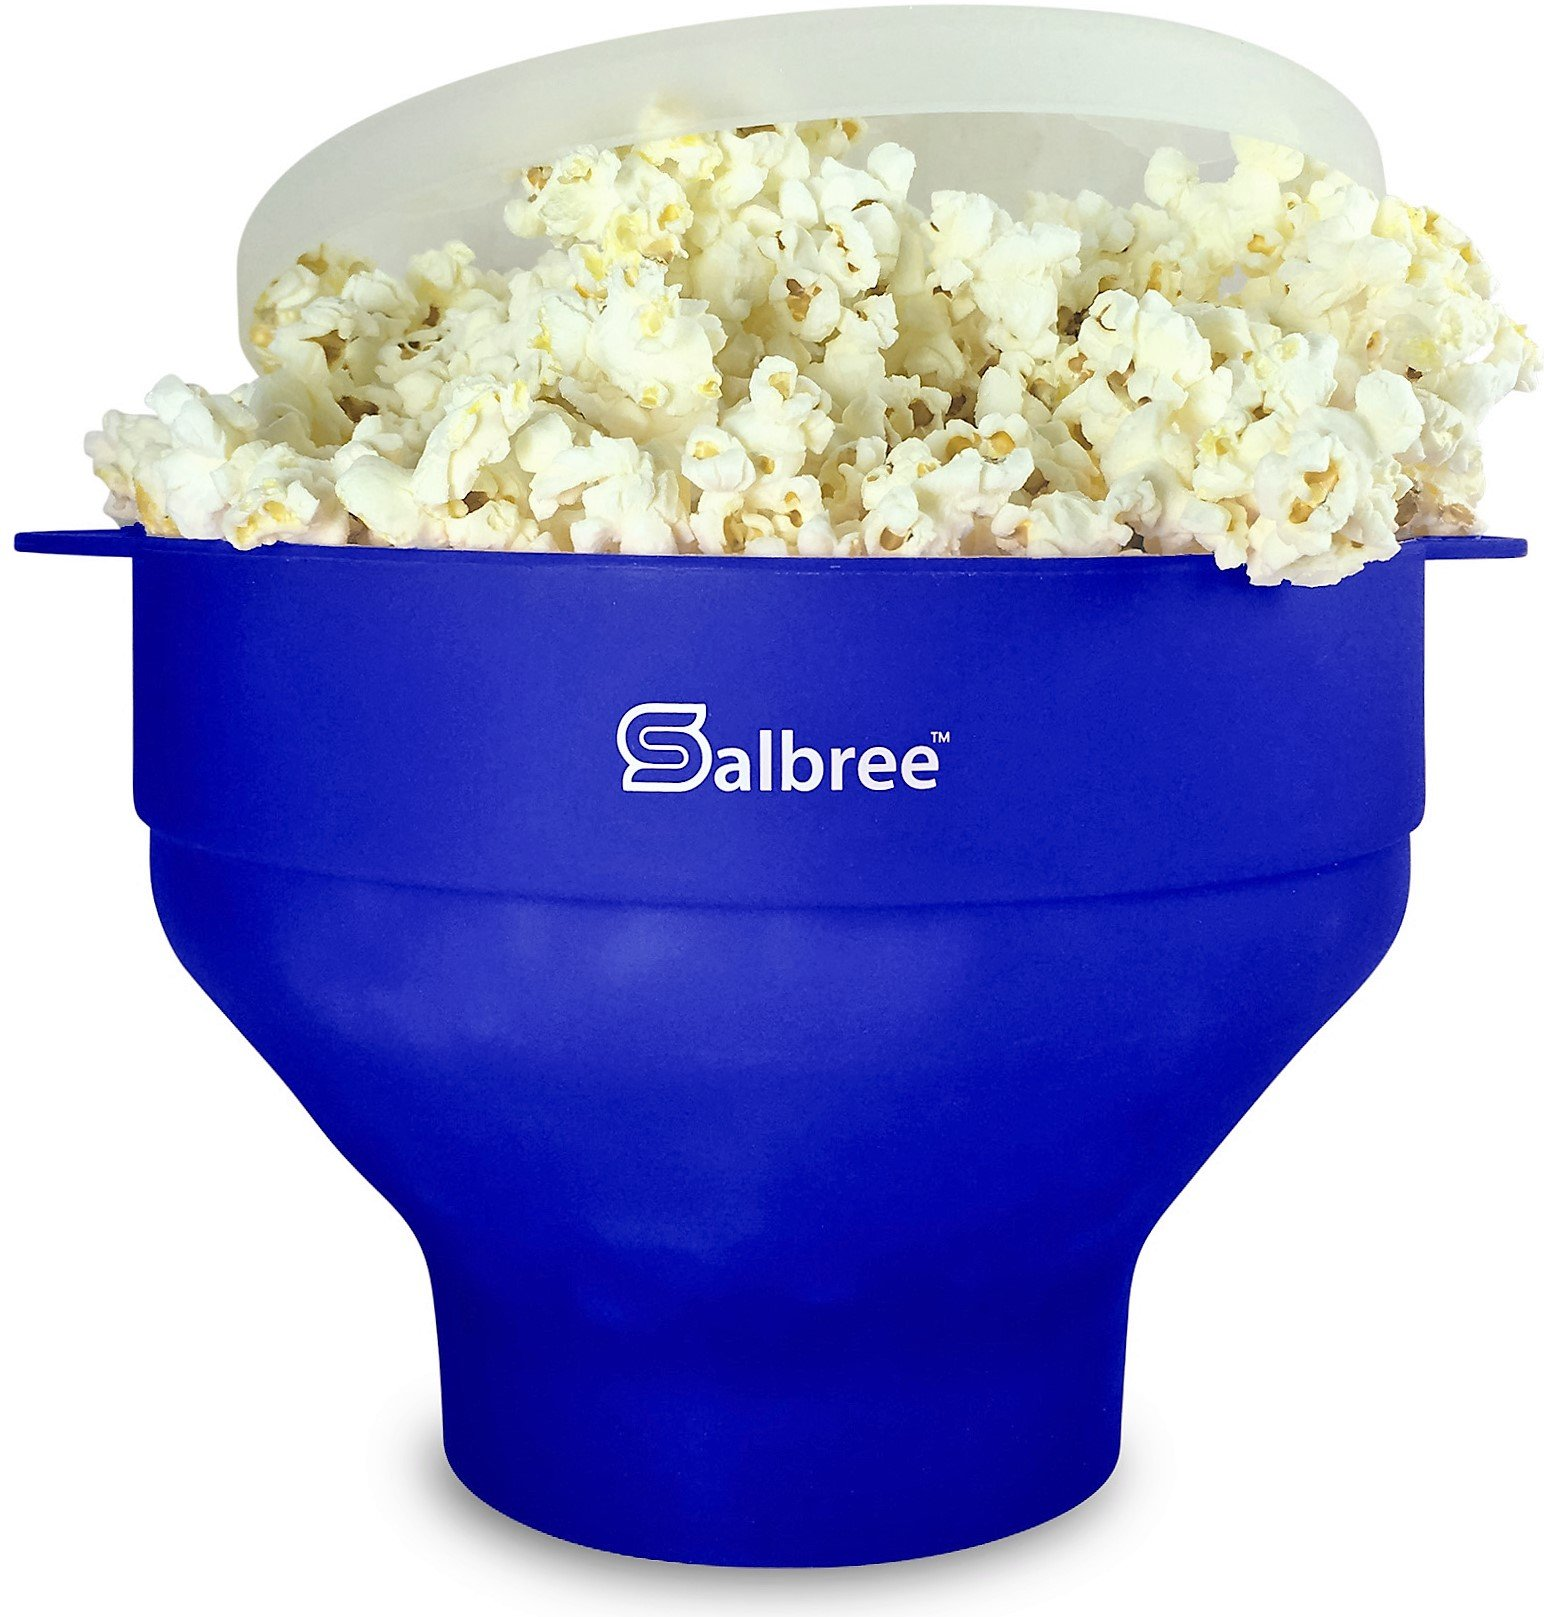 The Original Salbree Microwave Popcorn Popper, Silicone Popcorn Maker, Collapsible Bowl BPA Free (Blue)